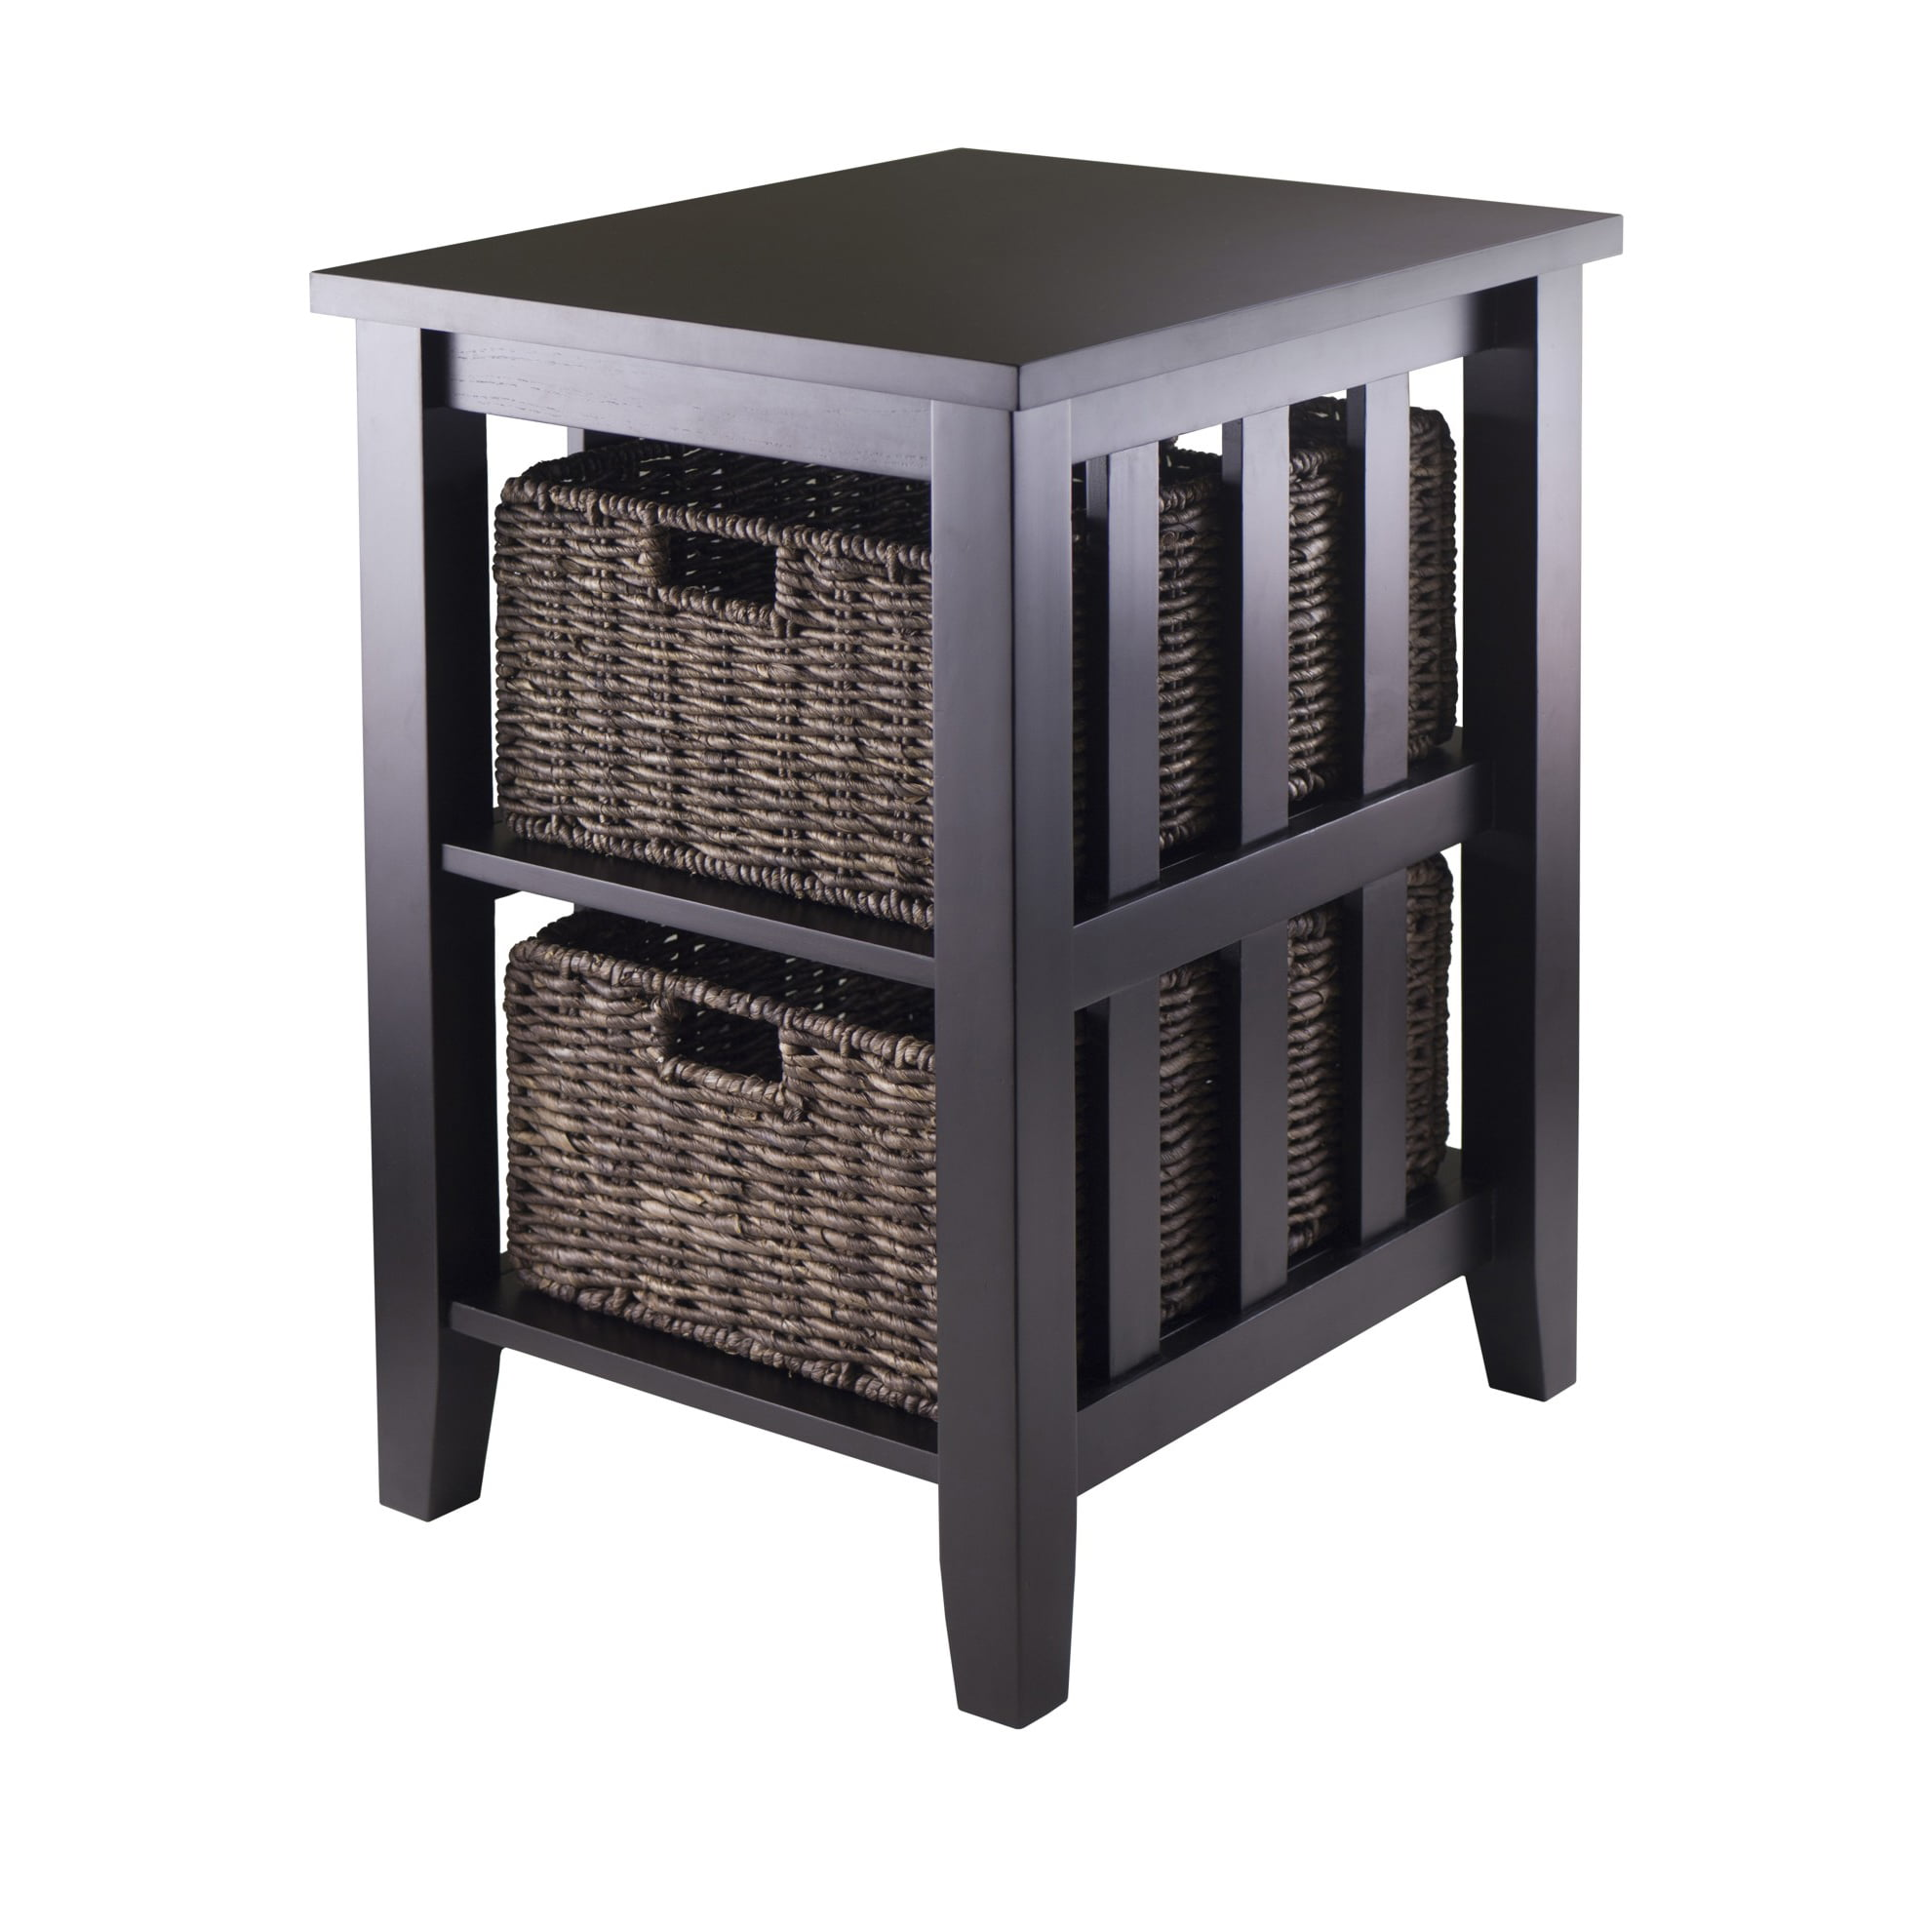 Winsome Wood Morris Accent Table with 2 Storage Baskets, Espresso Finish by Winsome Trading Inc